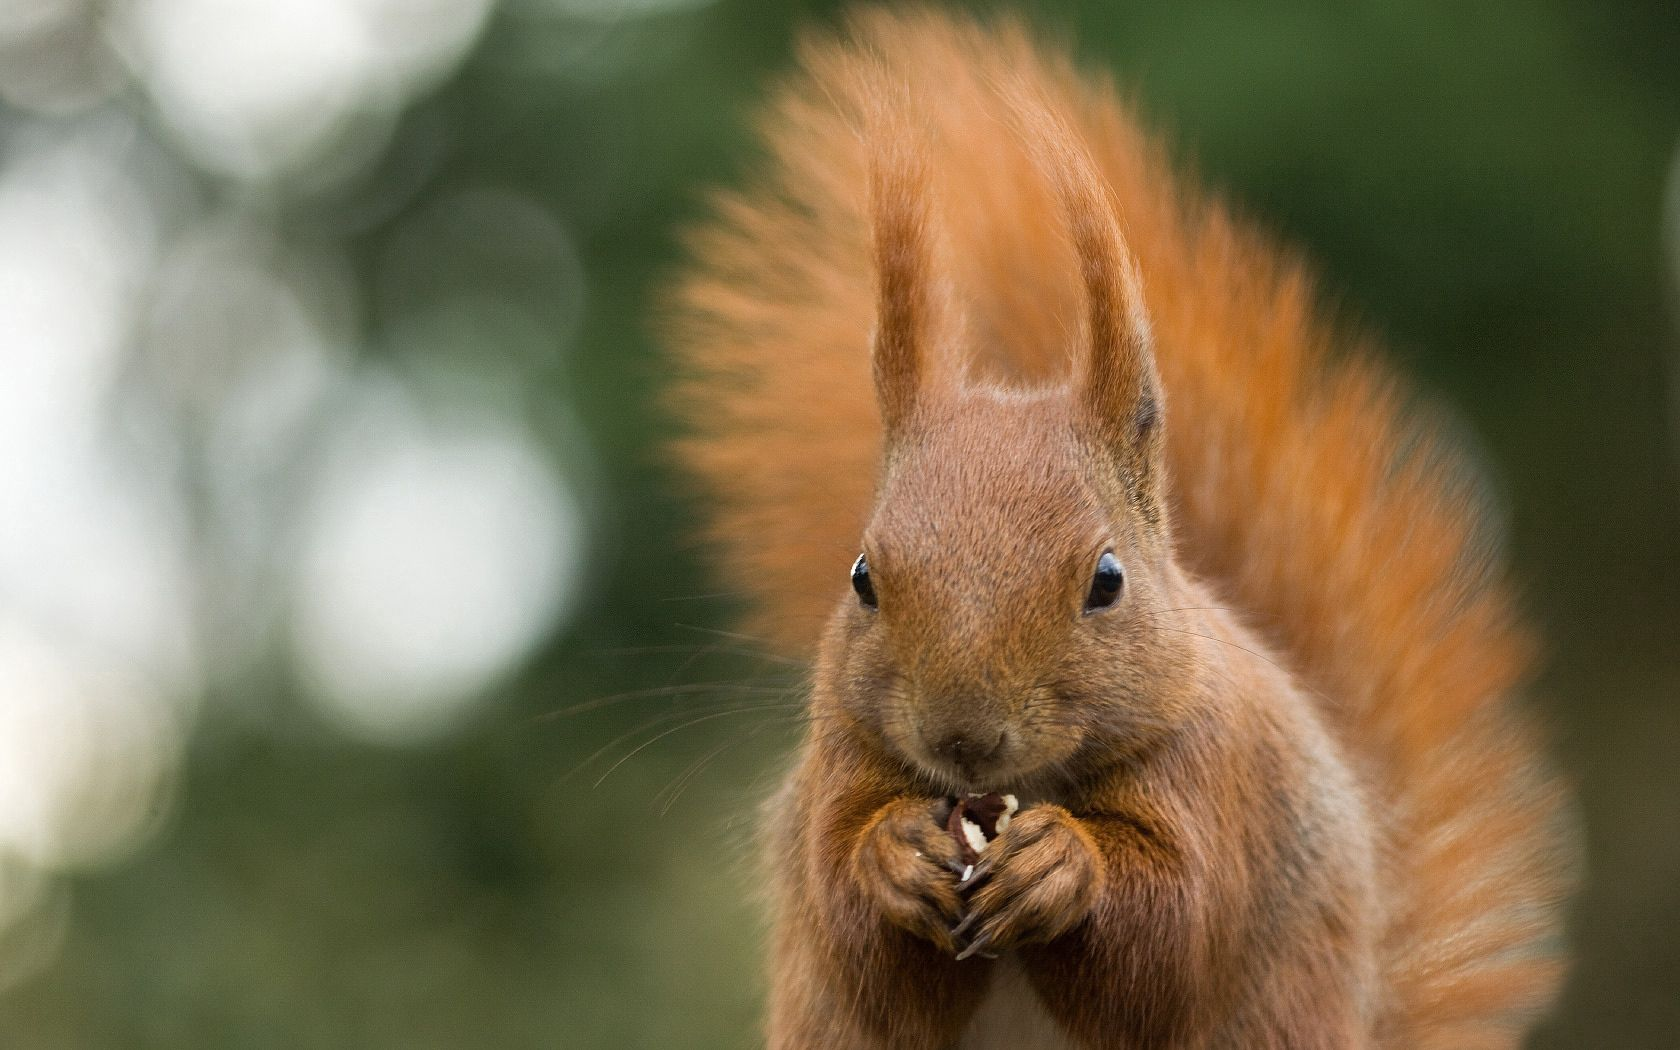 99908 download wallpaper Animals, Squirrel, Animal, Gnaws, Eats, Nut, Glare screensavers and pictures for free